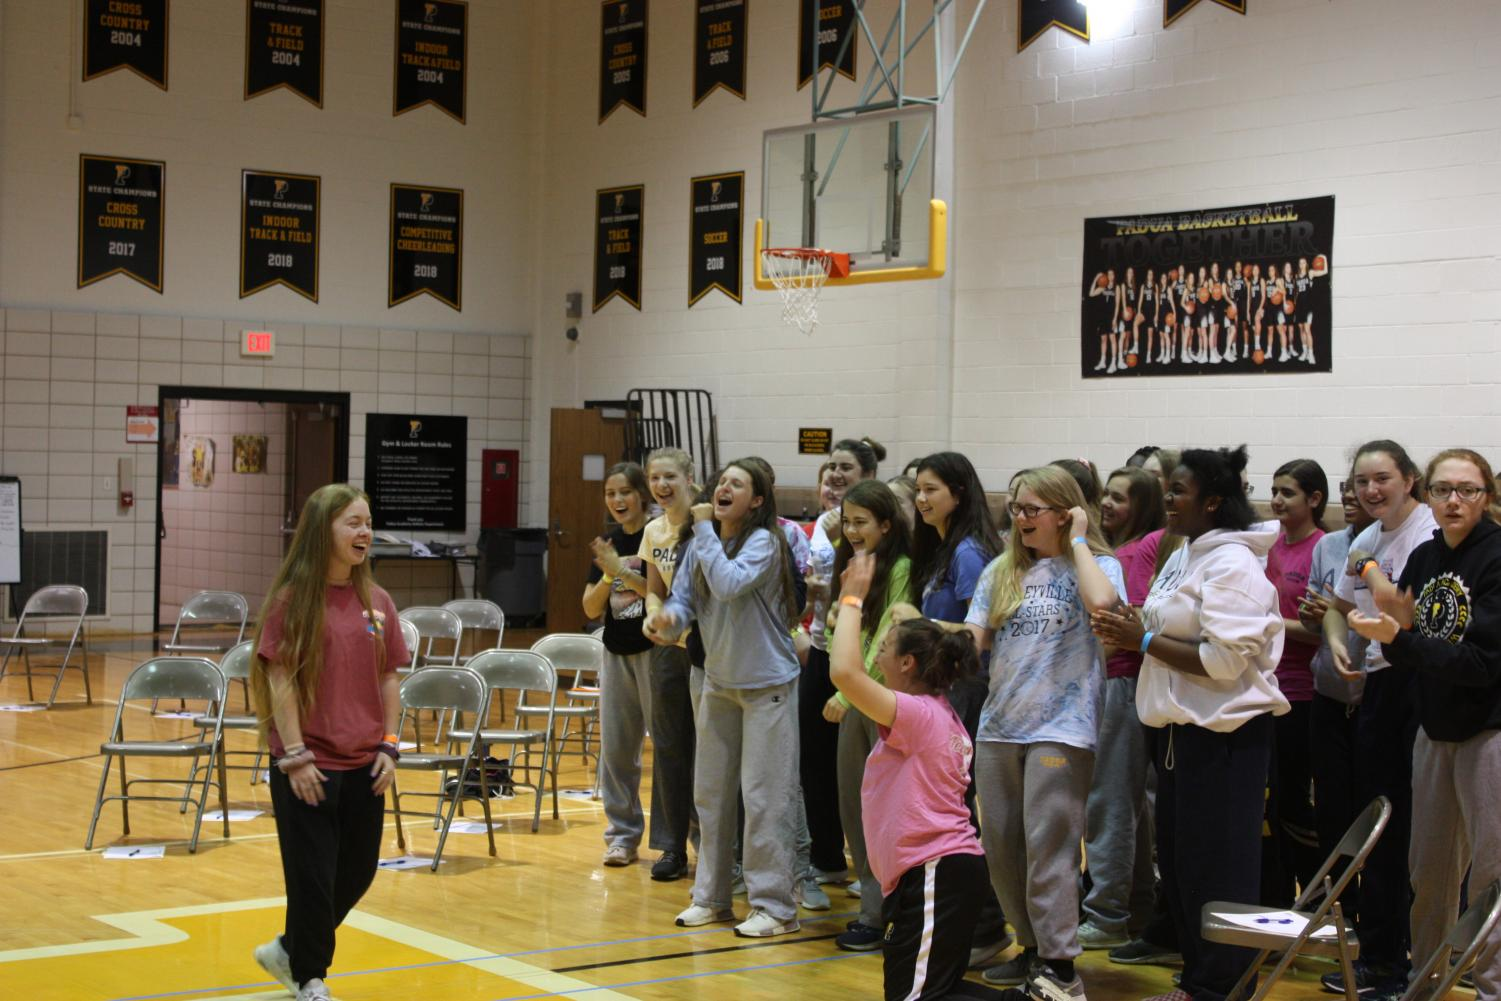 The freshmen participating in one of the BRAVE activities in which they had to cheer their fellow freshman on.